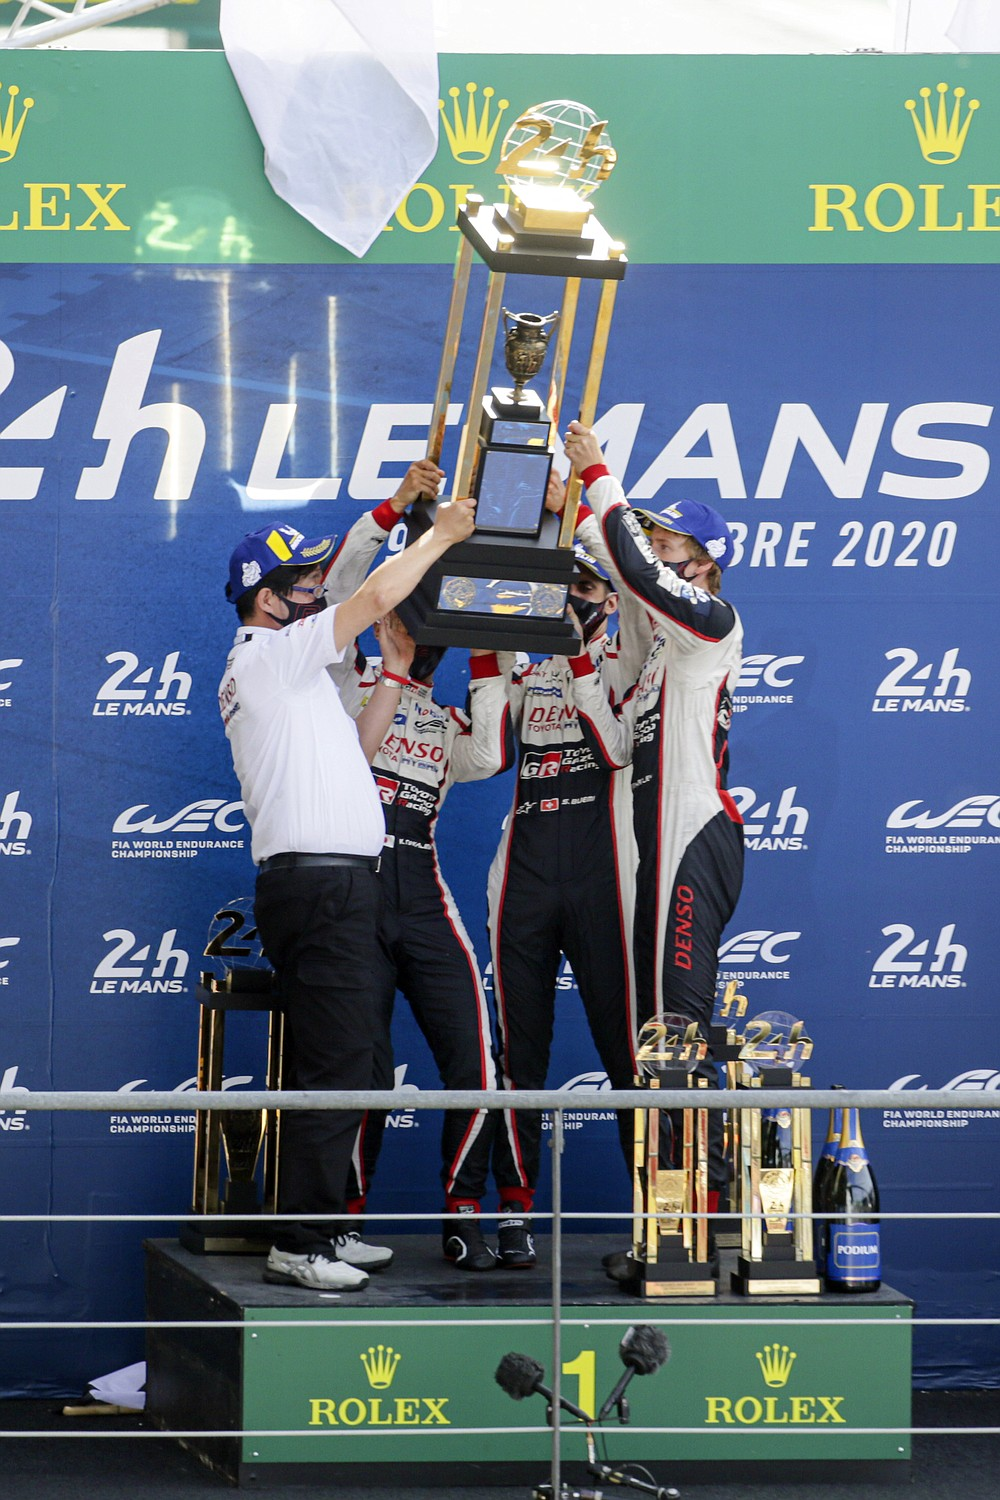 The Toyota TS050 Hybrid No8 of the Toyota Gazoo Racing Team's drivers Sebastien Buemi of Switzerland, Kazuki Nakajima of Japan and Brendon Hartley hold the trophy during the podium ceremony of the 88th 24-hour Le Mans endurance race, in Le Mans, western France, Sunday, Sept. 20, 2020. (AP Photo/David Vincent)